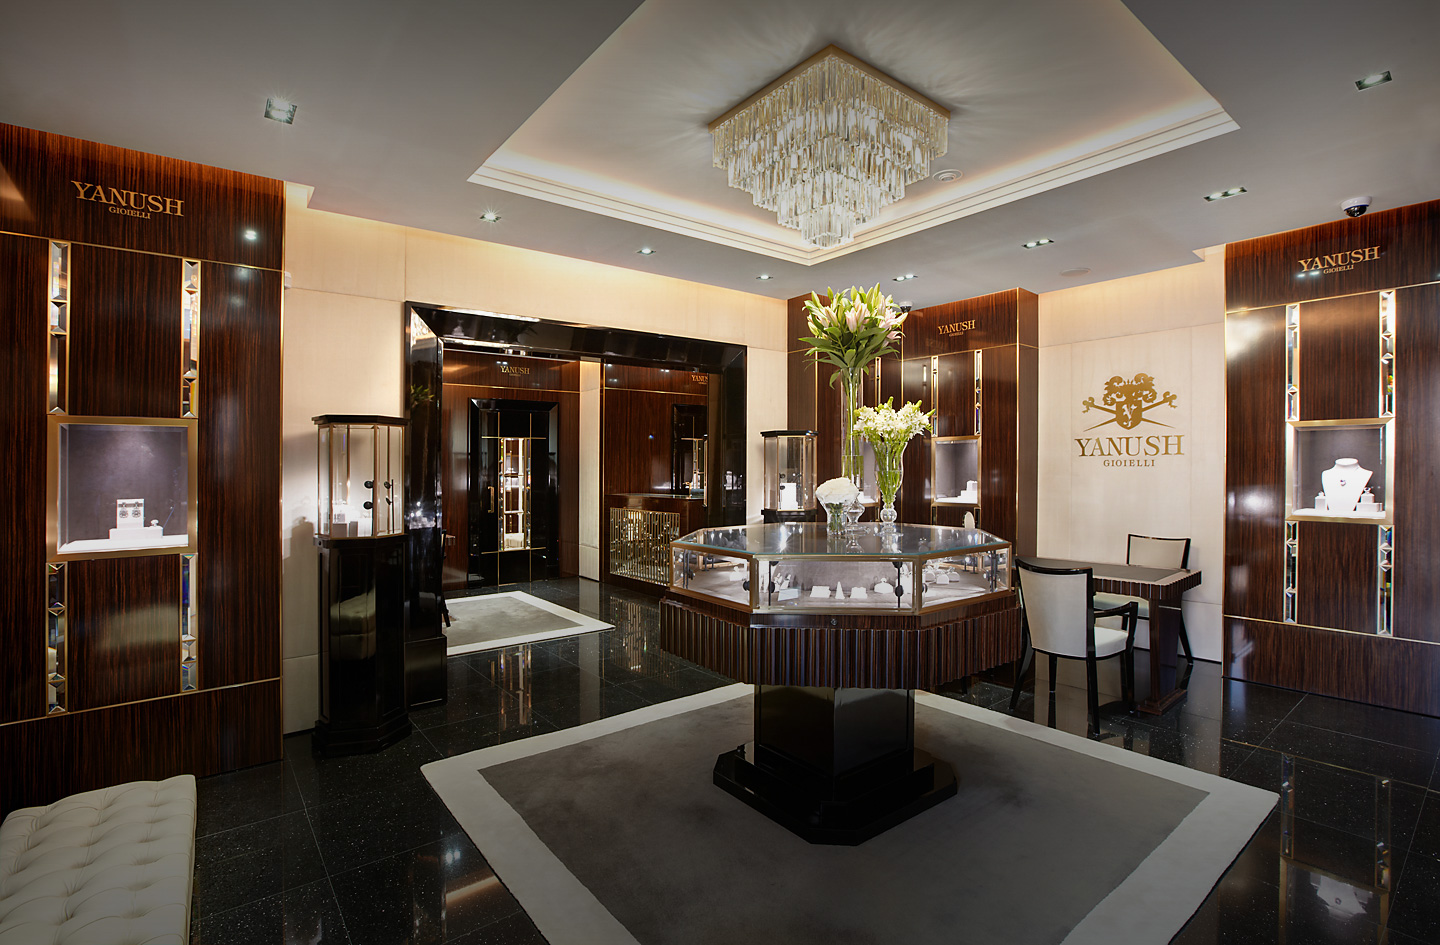 Yanush jewelry by katz jewelry boutique luxury interior for Boutique luxury